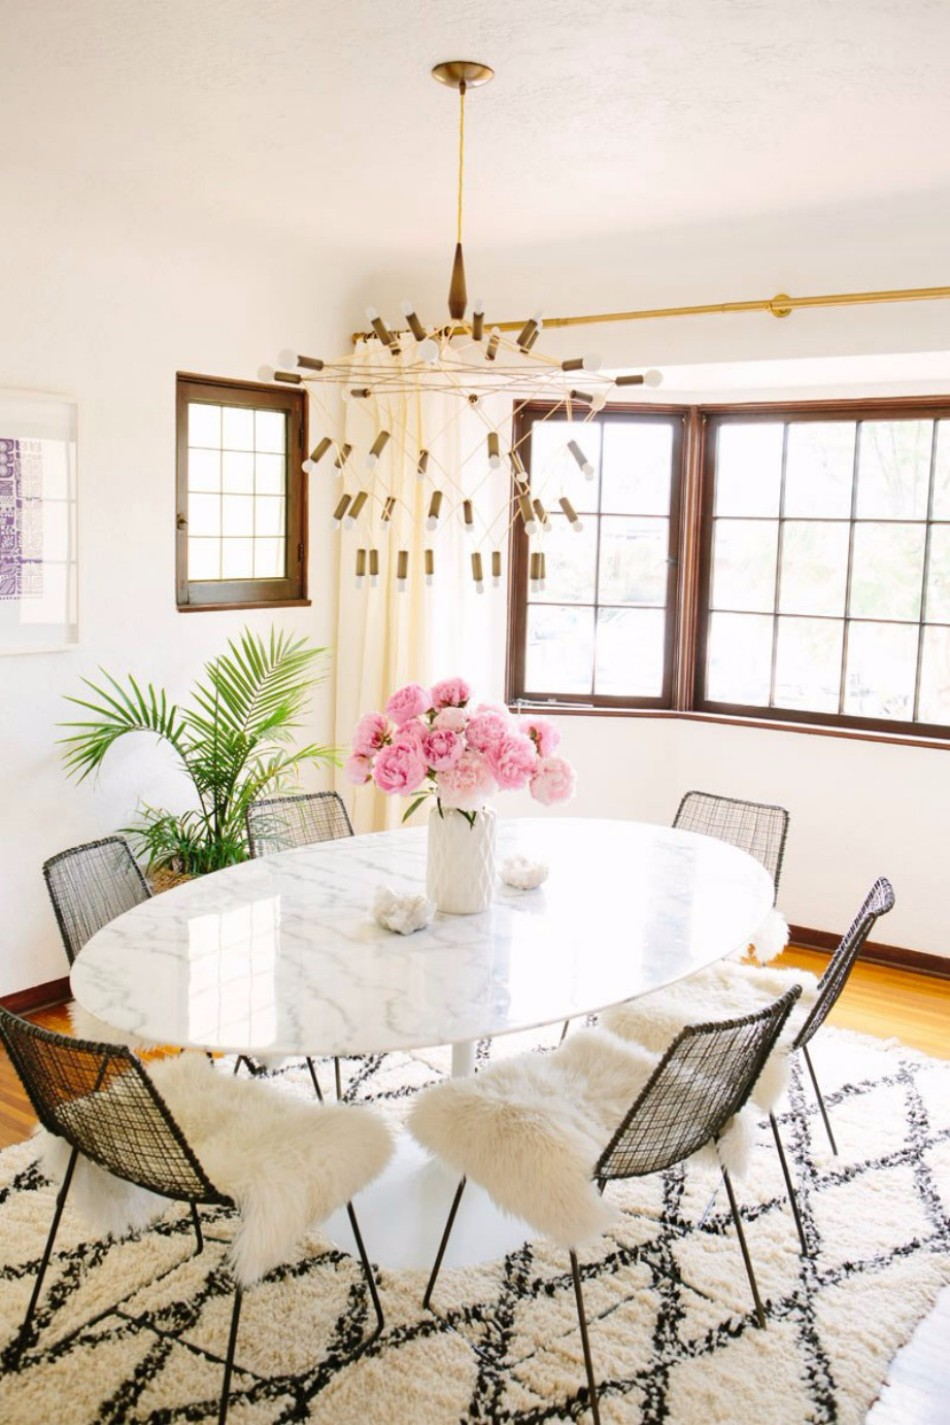 Top 10 Dining Room Decor Trends for 2018 | www.bocadolobo.com #moderndiningrooms #diningroom #diningtables #tables #trends #2018trends @moderndiningtables dining room decor Top 10 Dining Room Decor Trends for 2018 Top 10 Dining Room Decor Trends for 2018 1